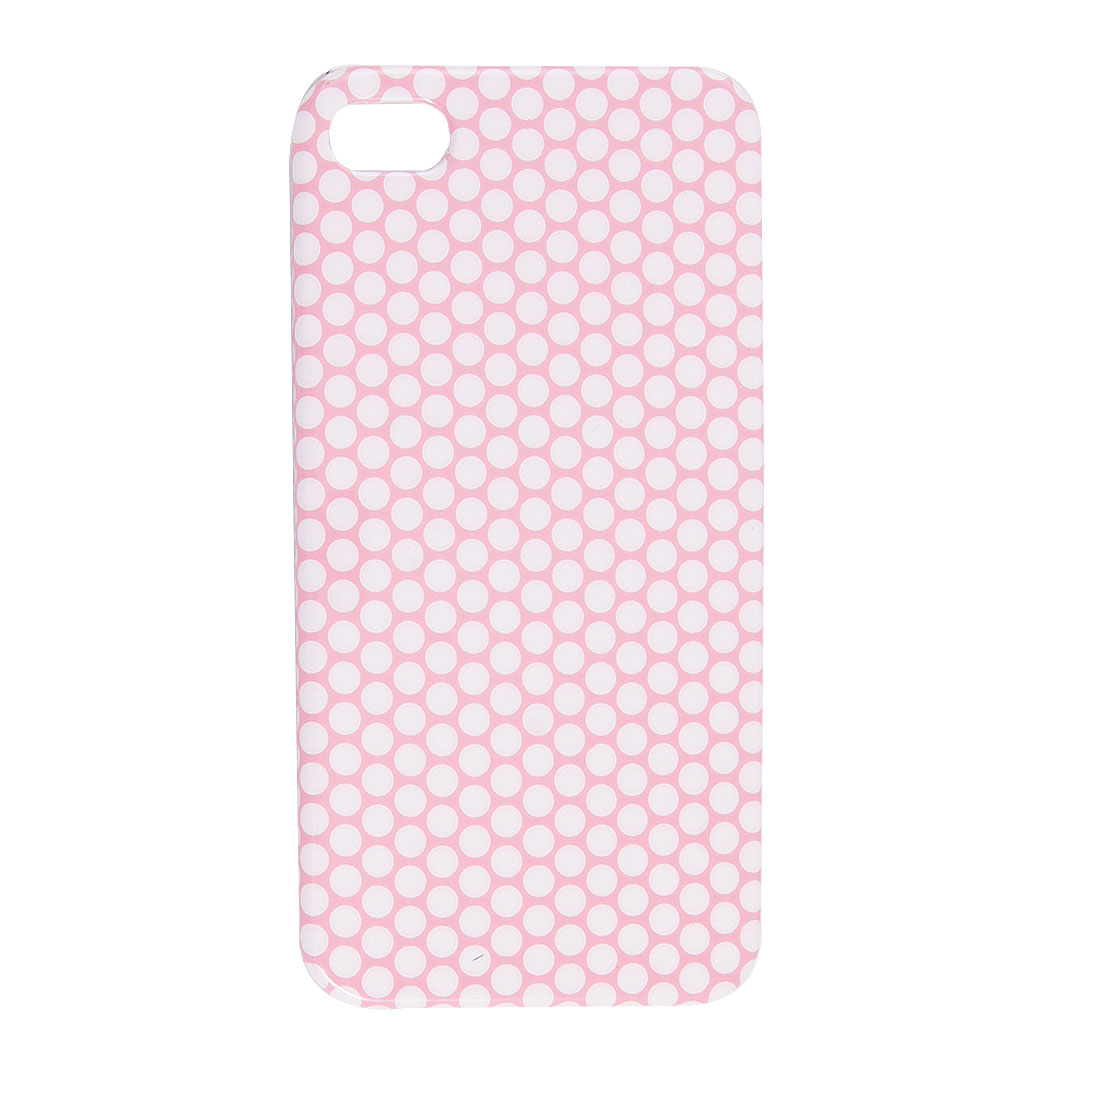 IMD Pink Dotted Prints Hard Plastic Back Shell White for iPhone 4 4G 4S